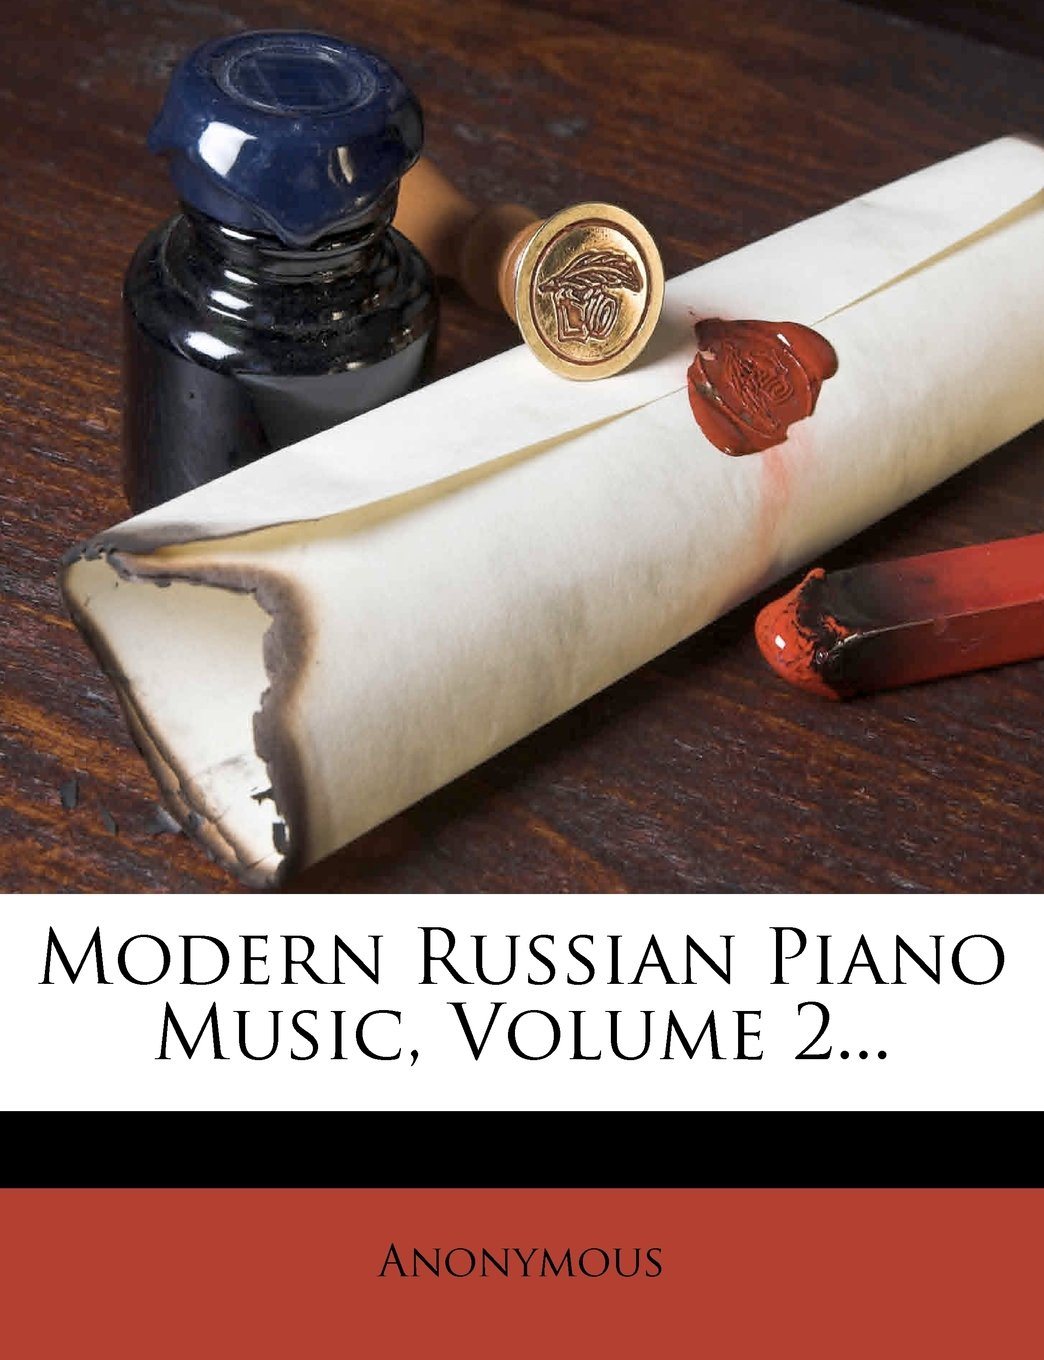 Modern Russian Piano Music, Volume 2   : Anonymous